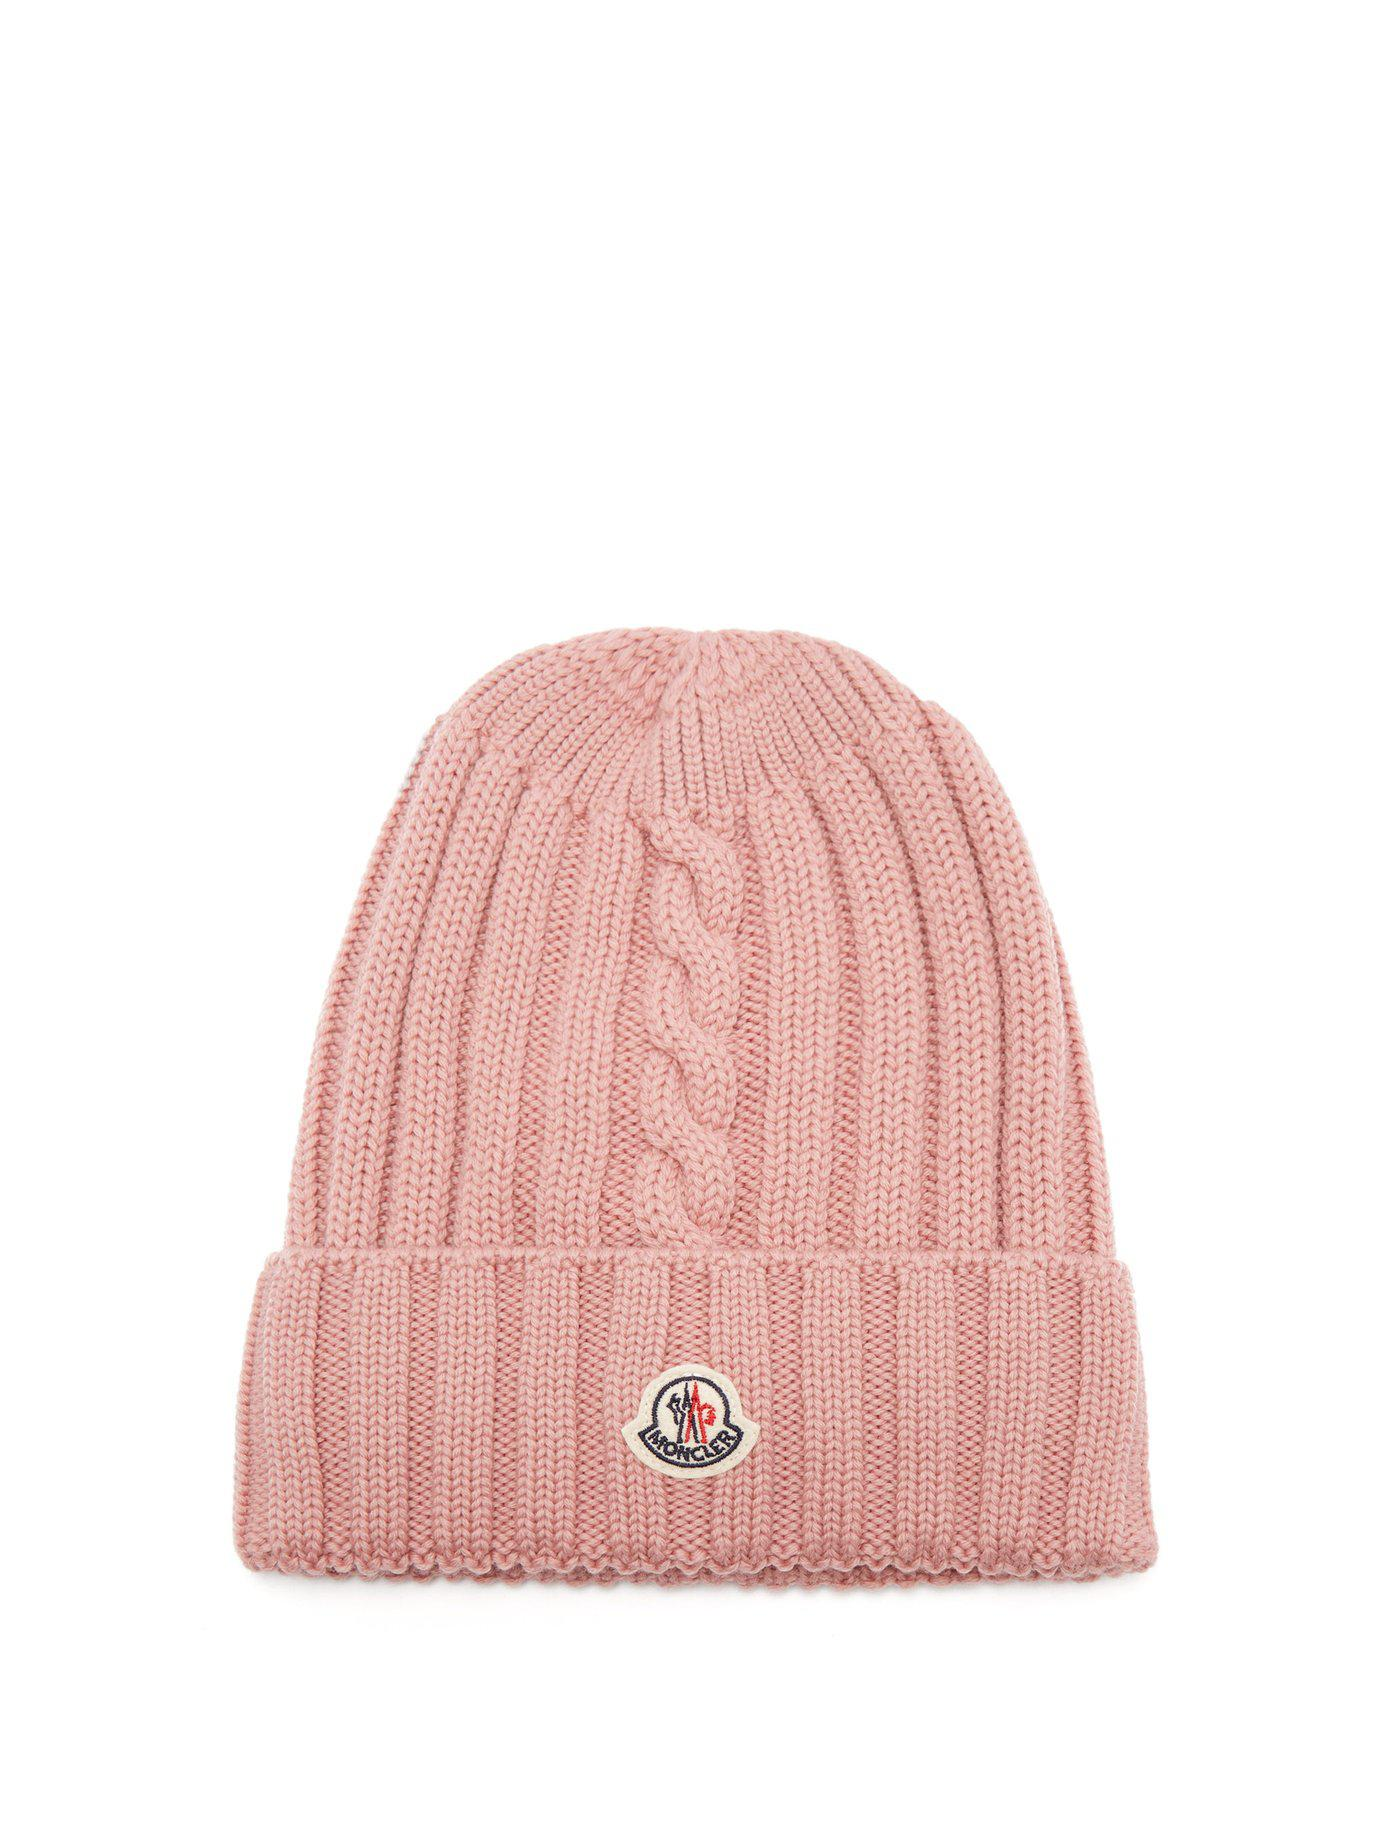 e527abc5836 Lyst - Moncler Ribbed-knit Wool Beanie Hat in Pink